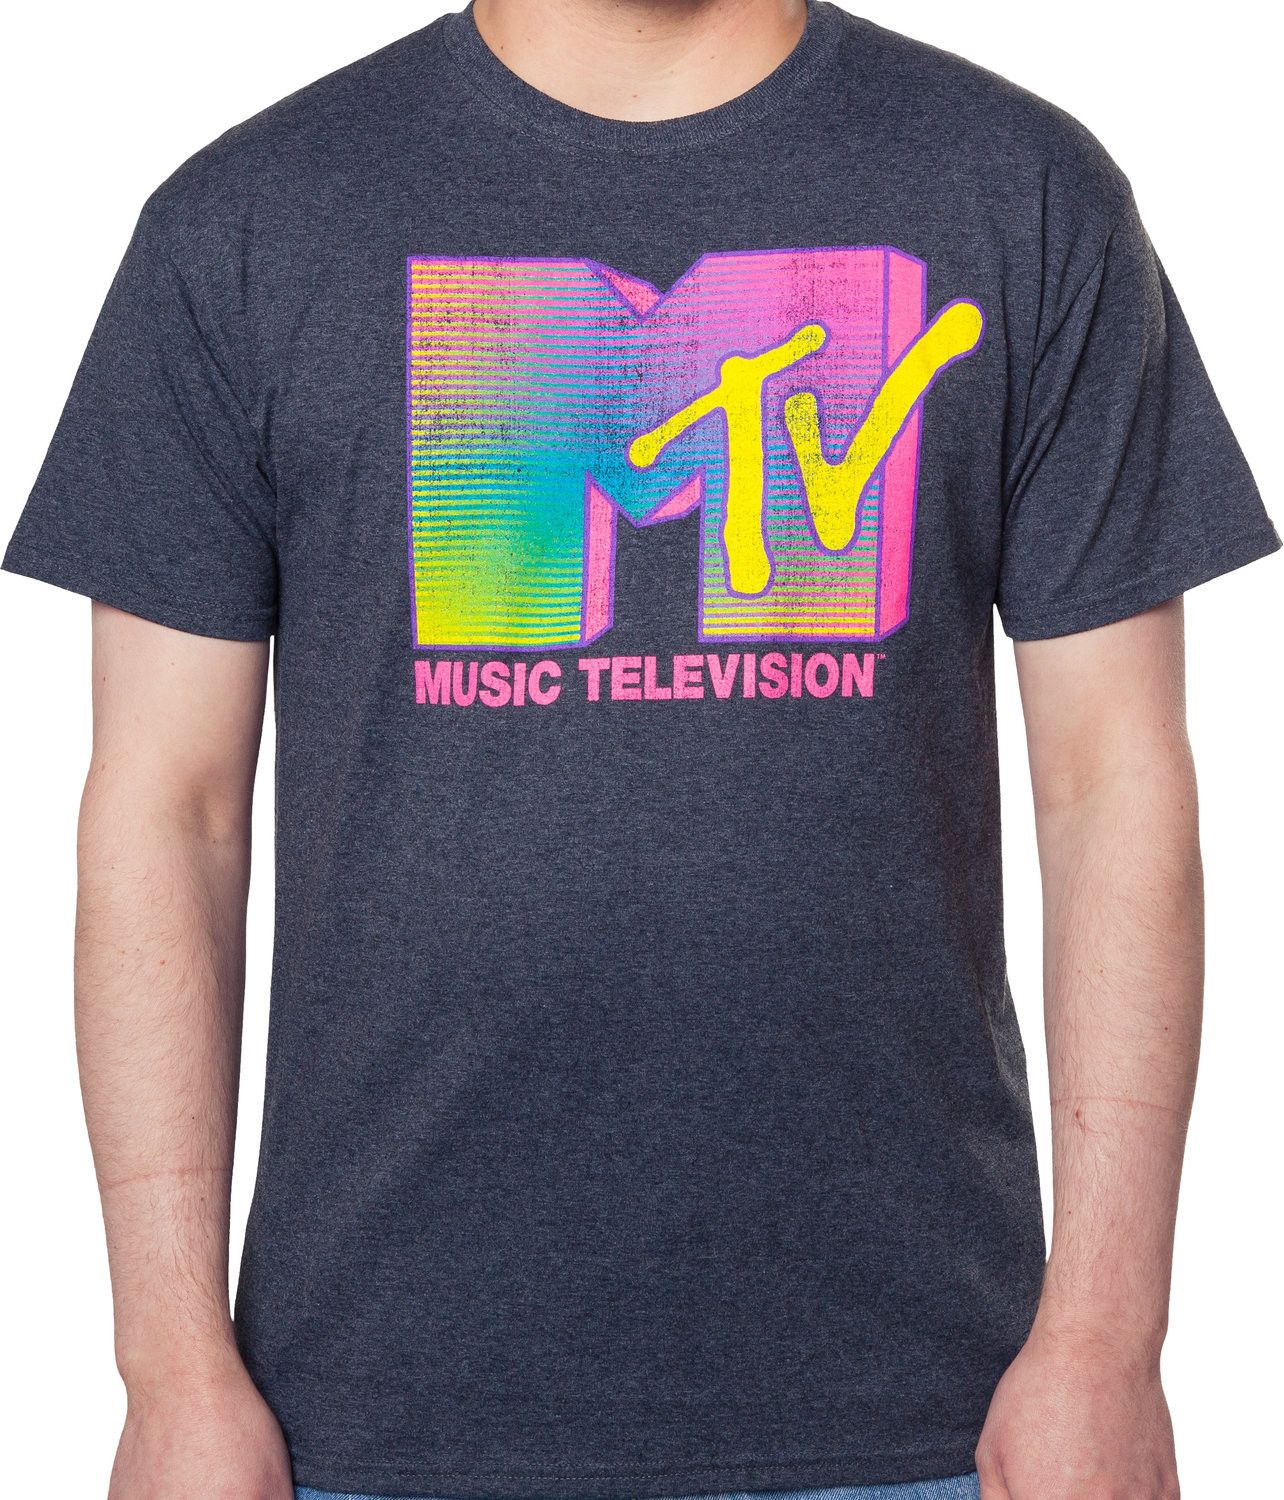 91a02c63bb17 Neon MTV Logo Shirt | New Mens T-Shirts From 80sTees.com in 2019 ...